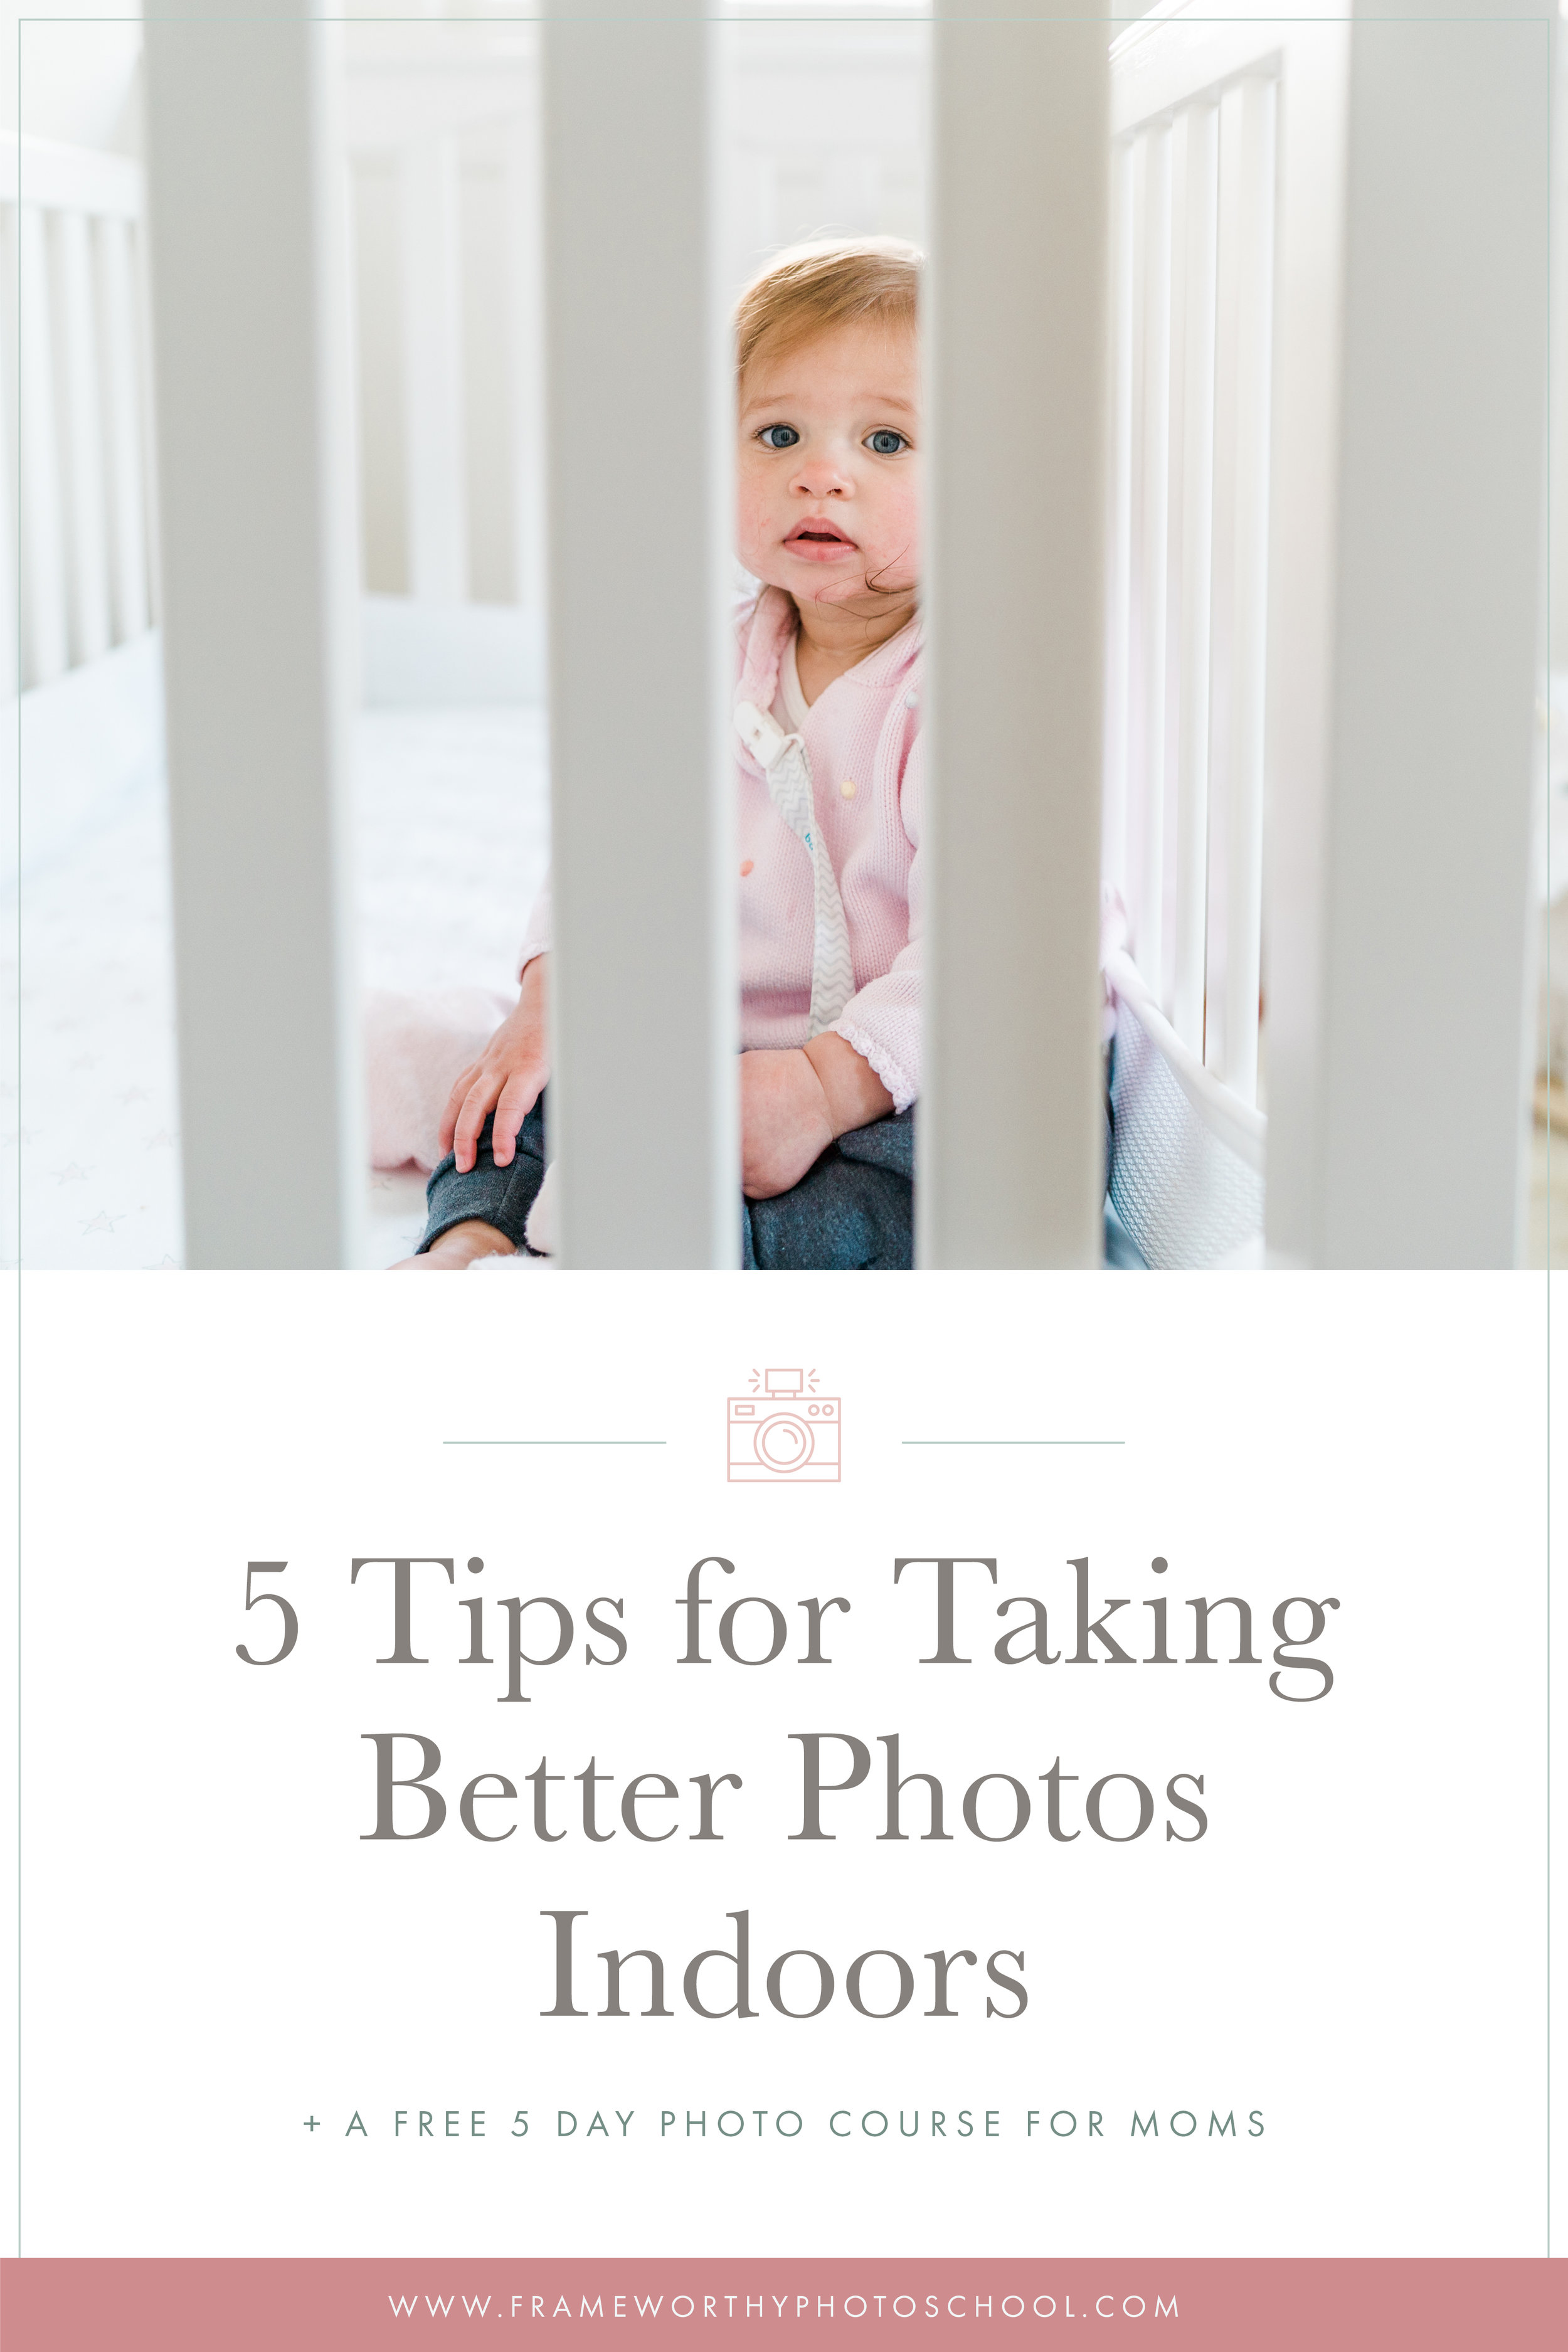 How to take better photos indoors